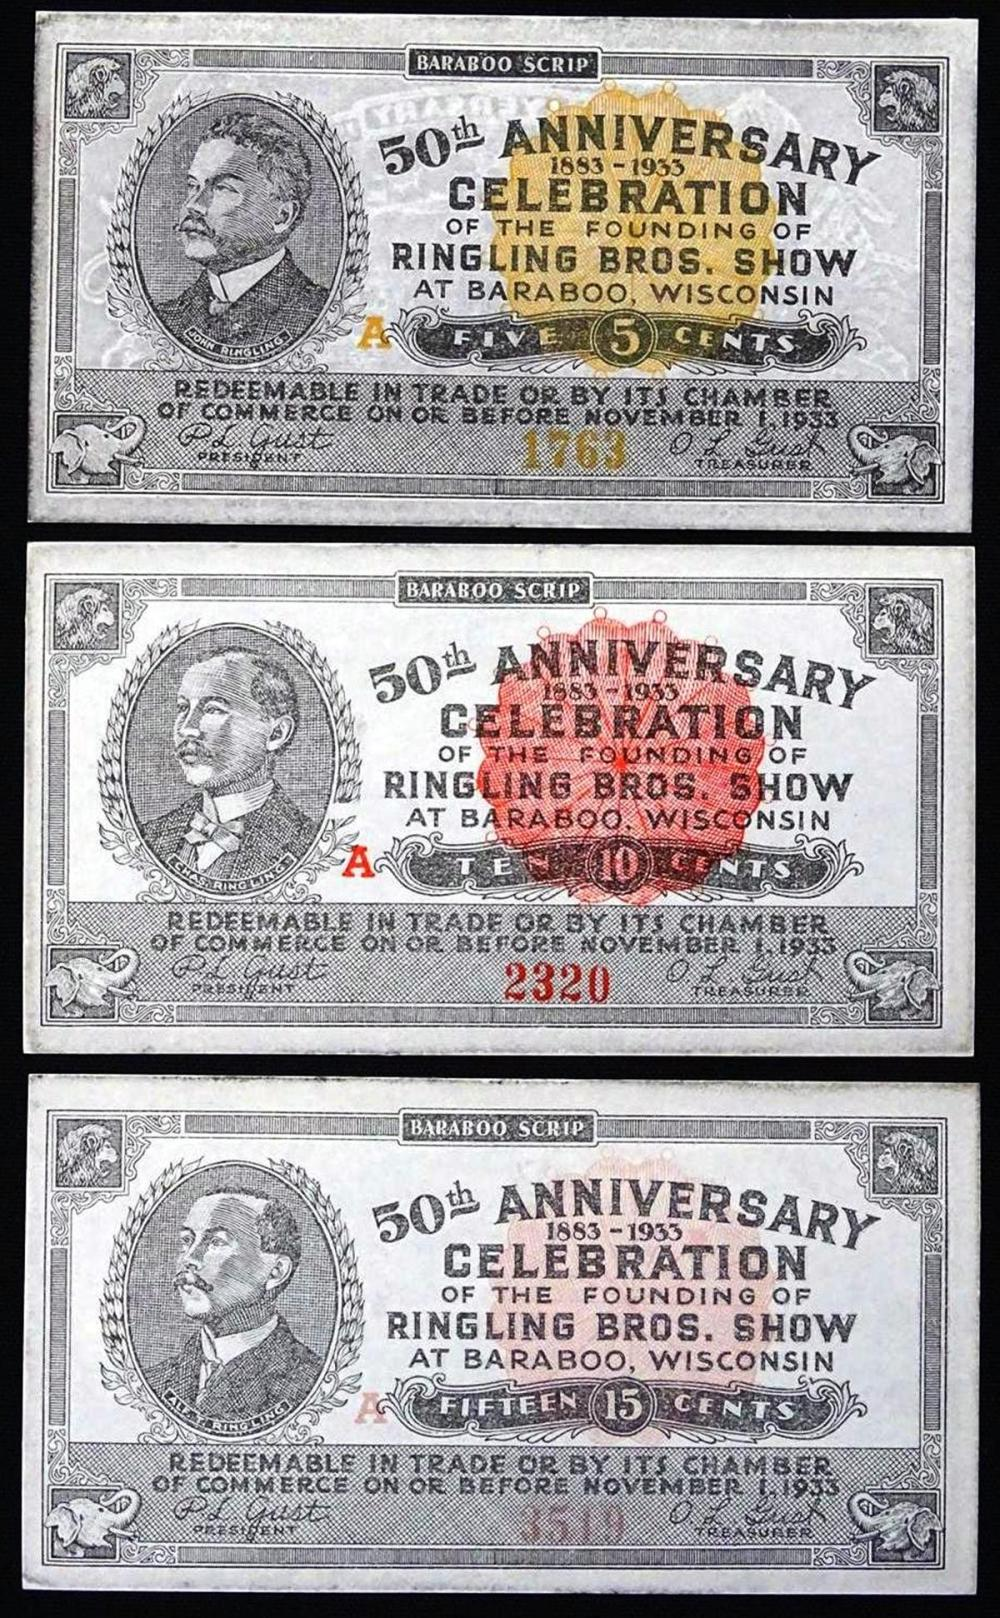 RINGLING BROTHERS SHOW 50TH ANNIV. SCRIP